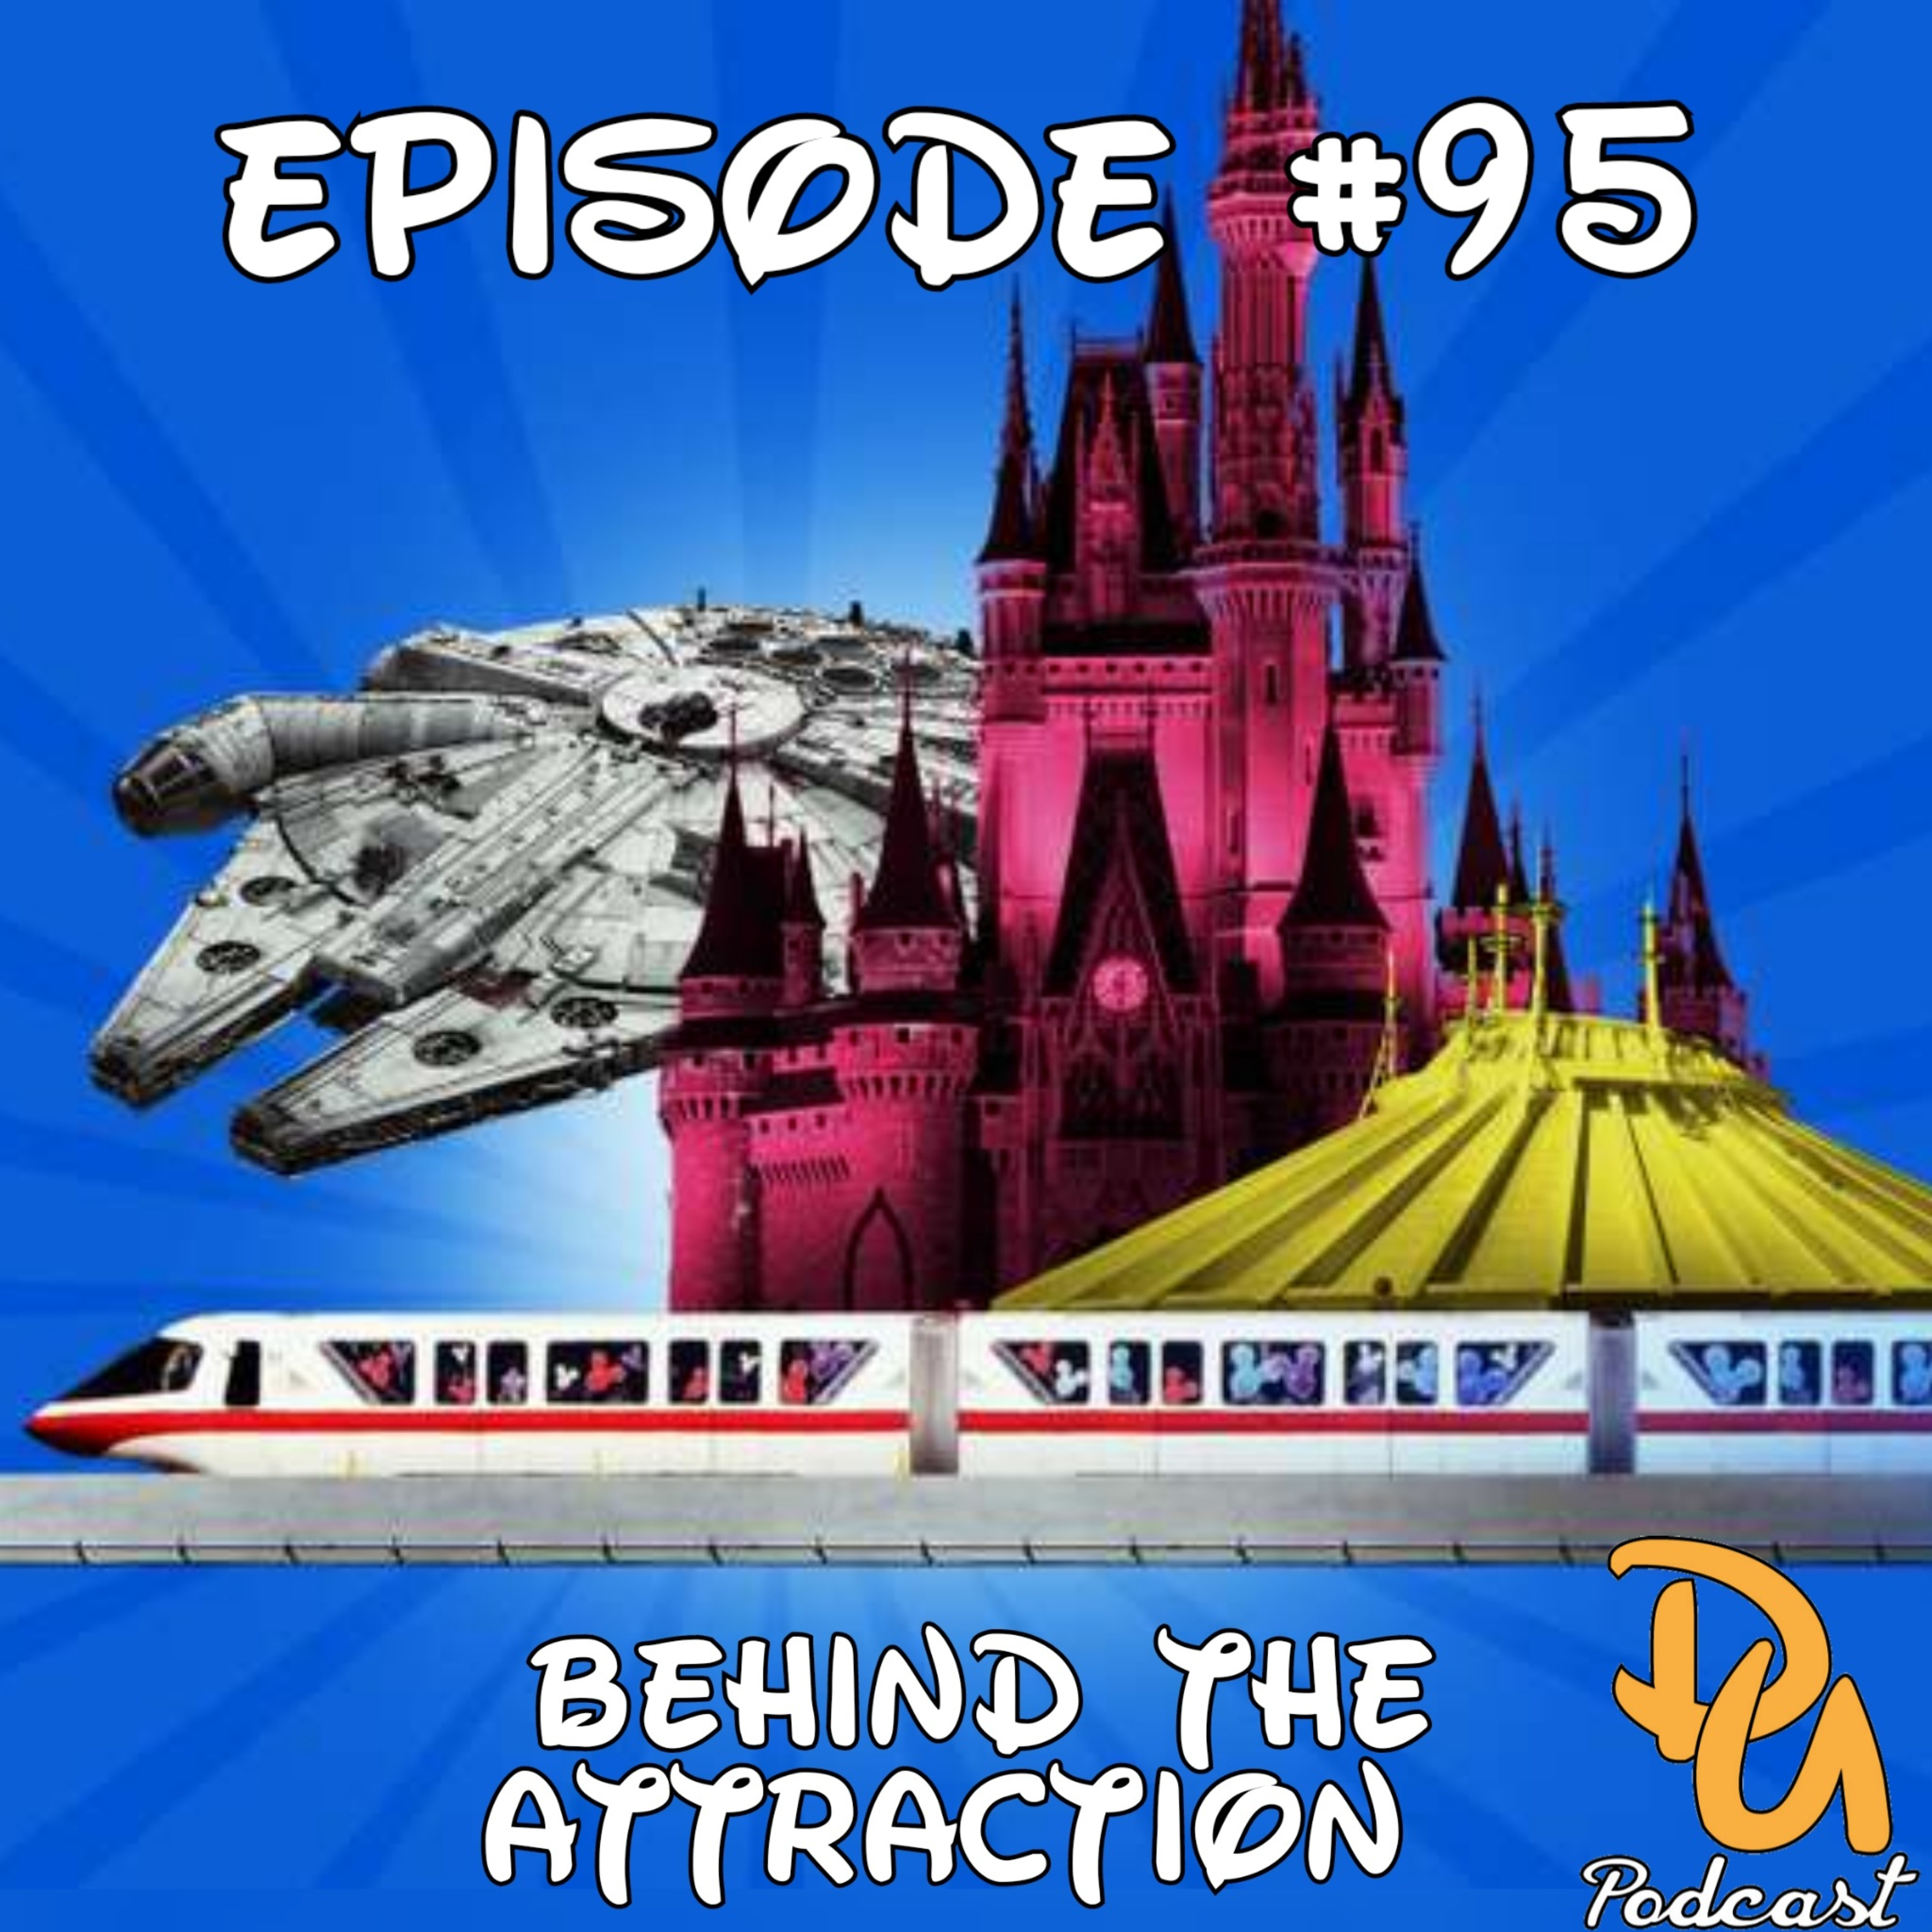 Going Behind the Attraction